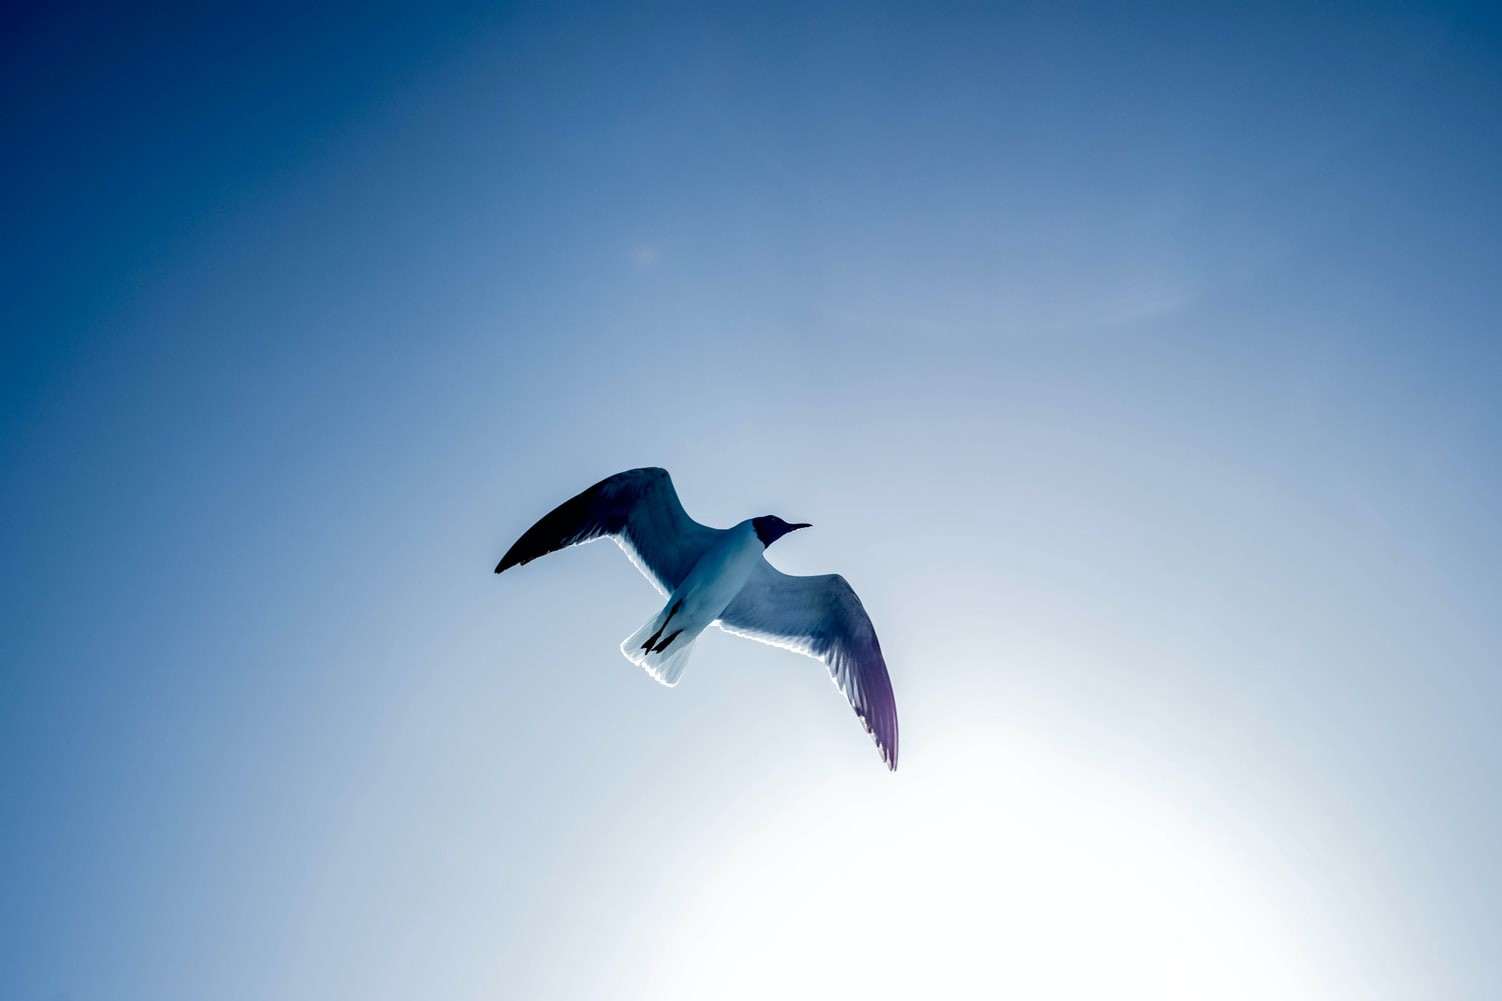 Bird with wings spread in blue sky.